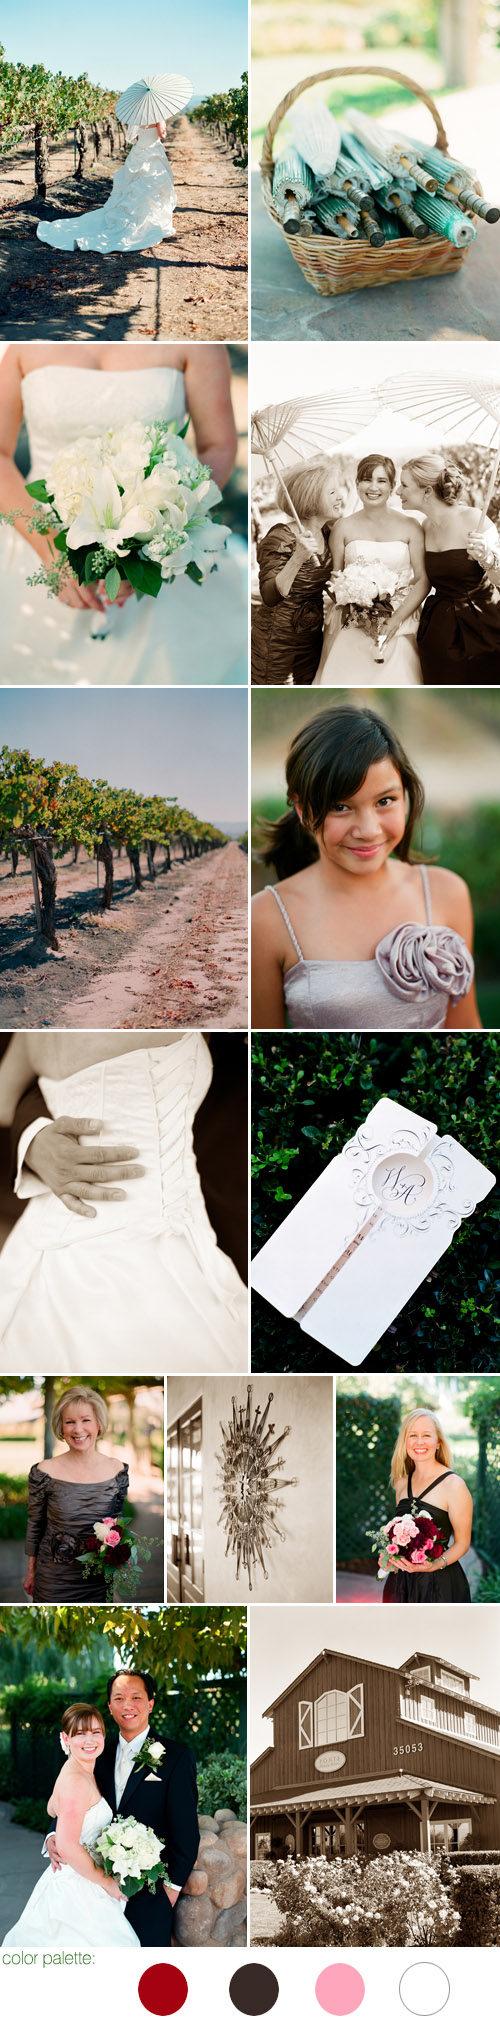 romantic fall vineyard wedding at the Ponte Family Estate Winery in Temecula, CA, photos by Ulrica Wihlborg